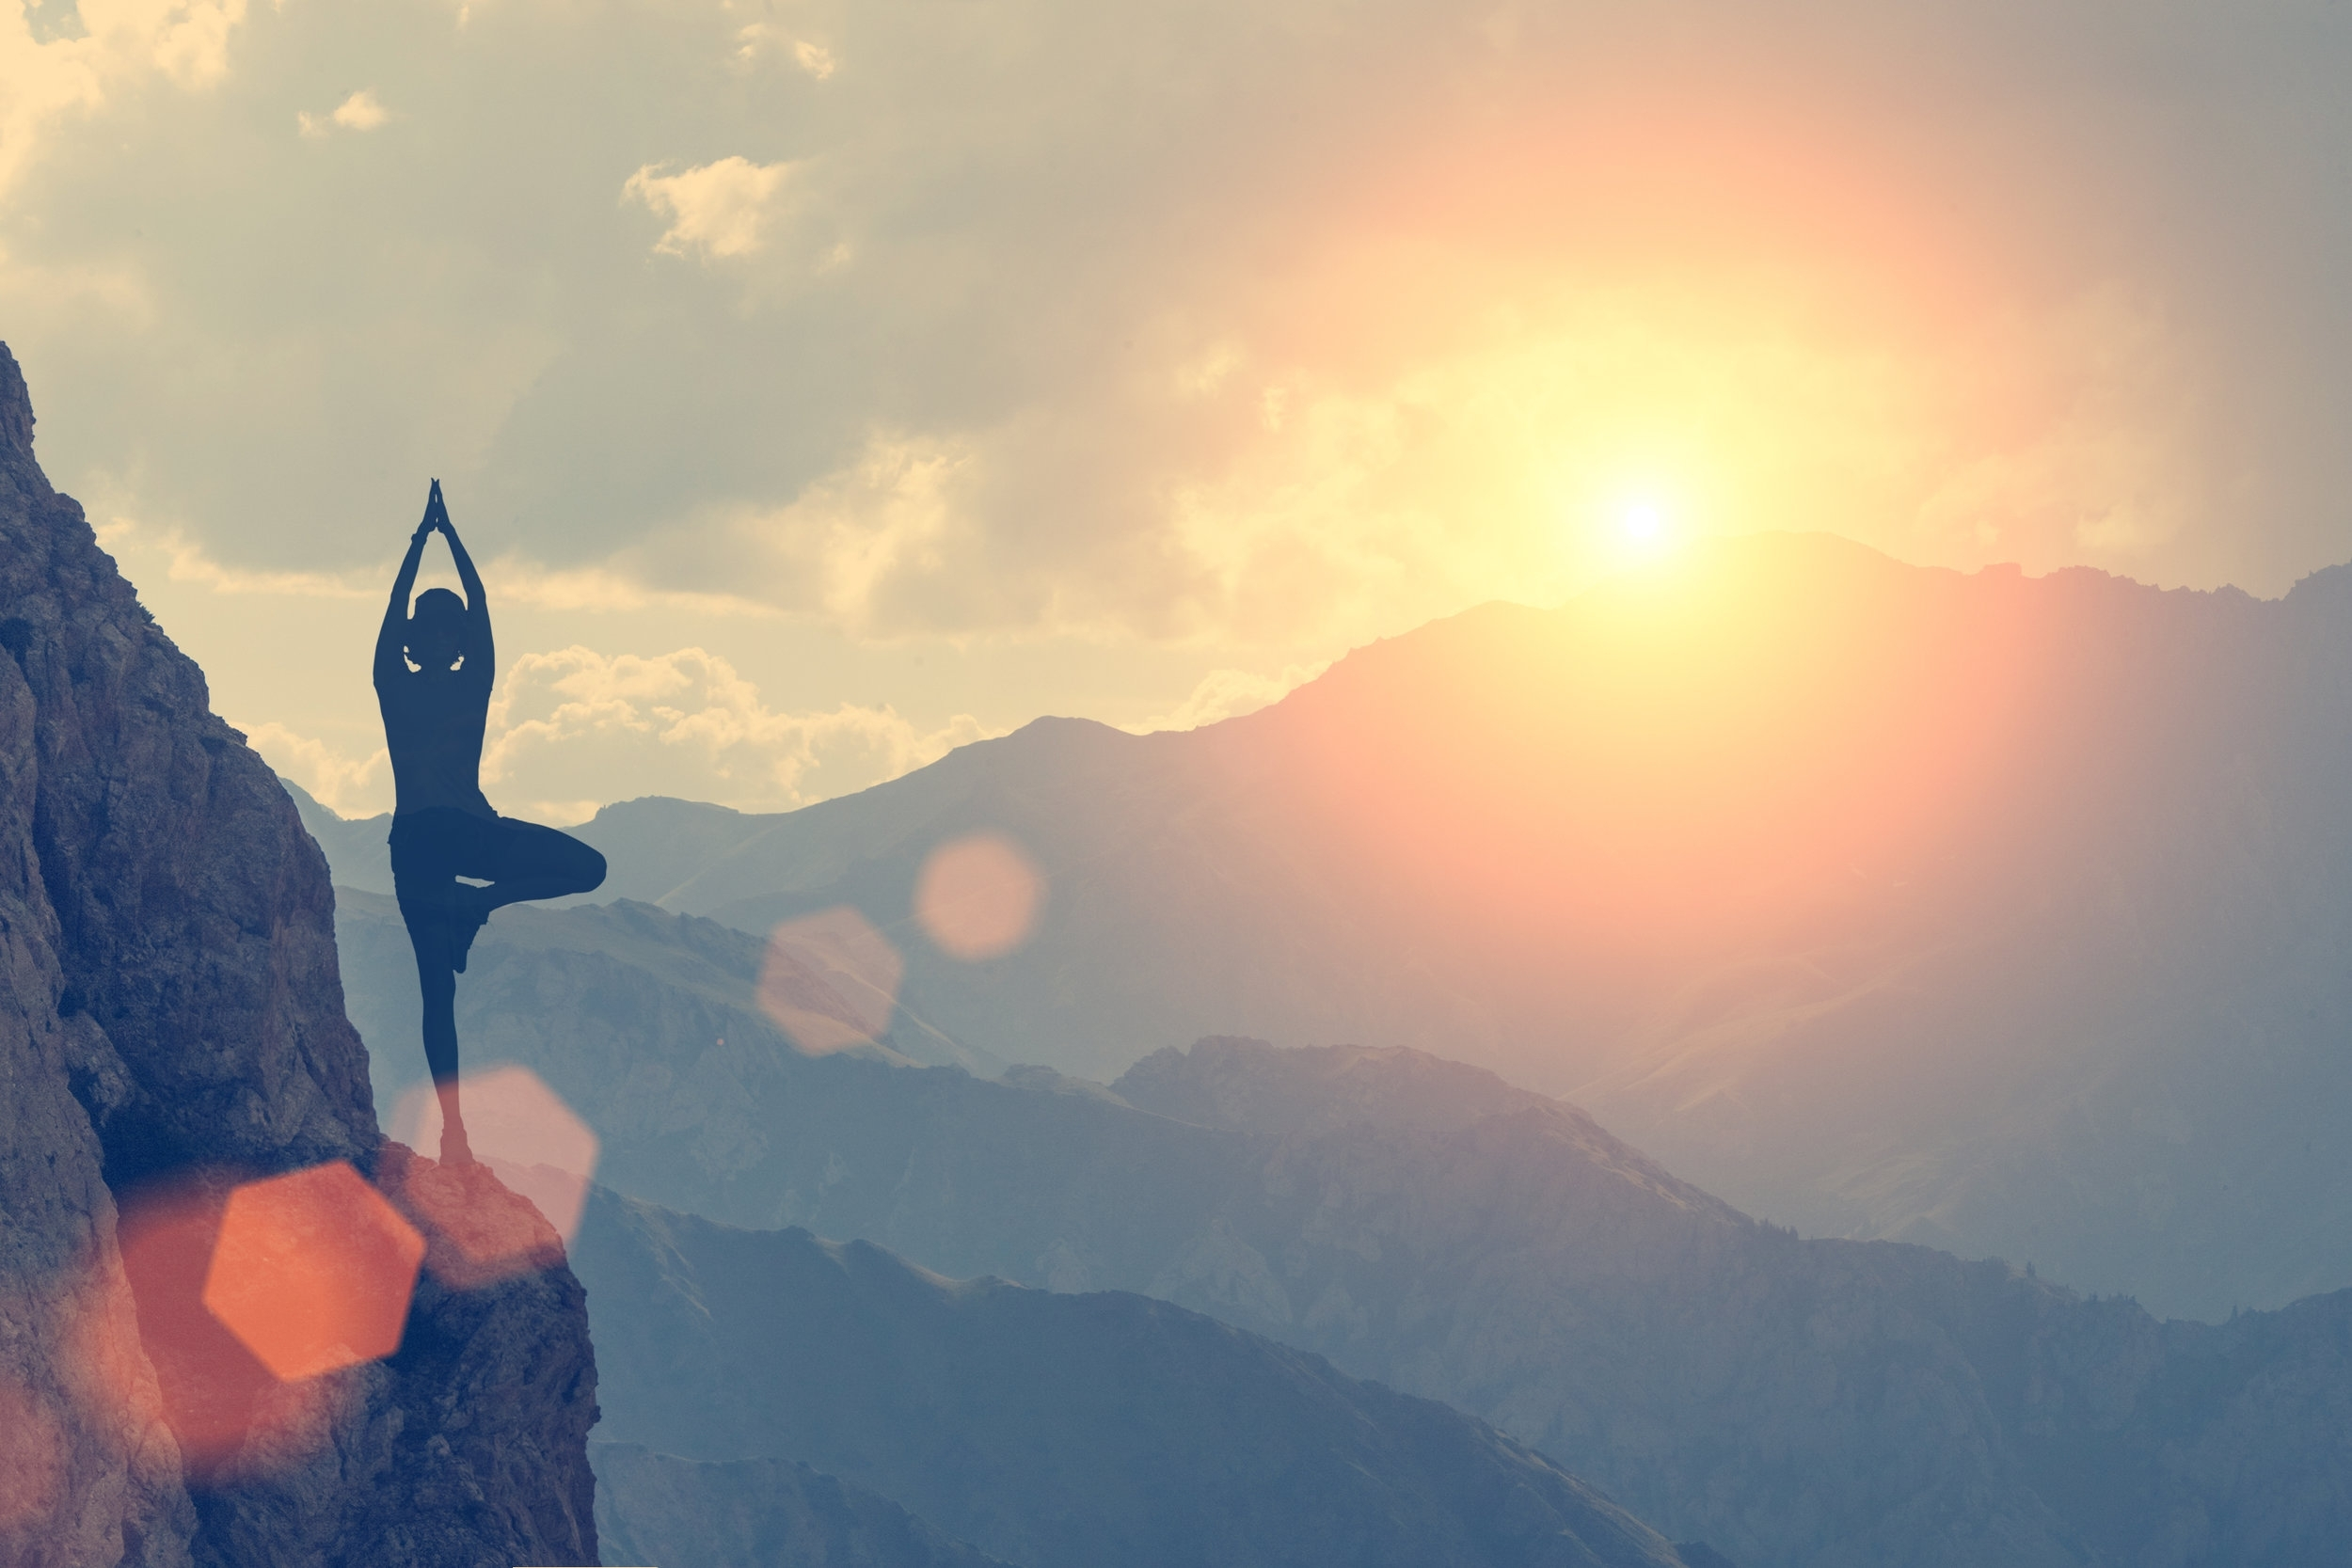 stock-photo-a-woman-practices-yoga-on-a-background-of-mountains-and-sky-toned-412255600.jpg